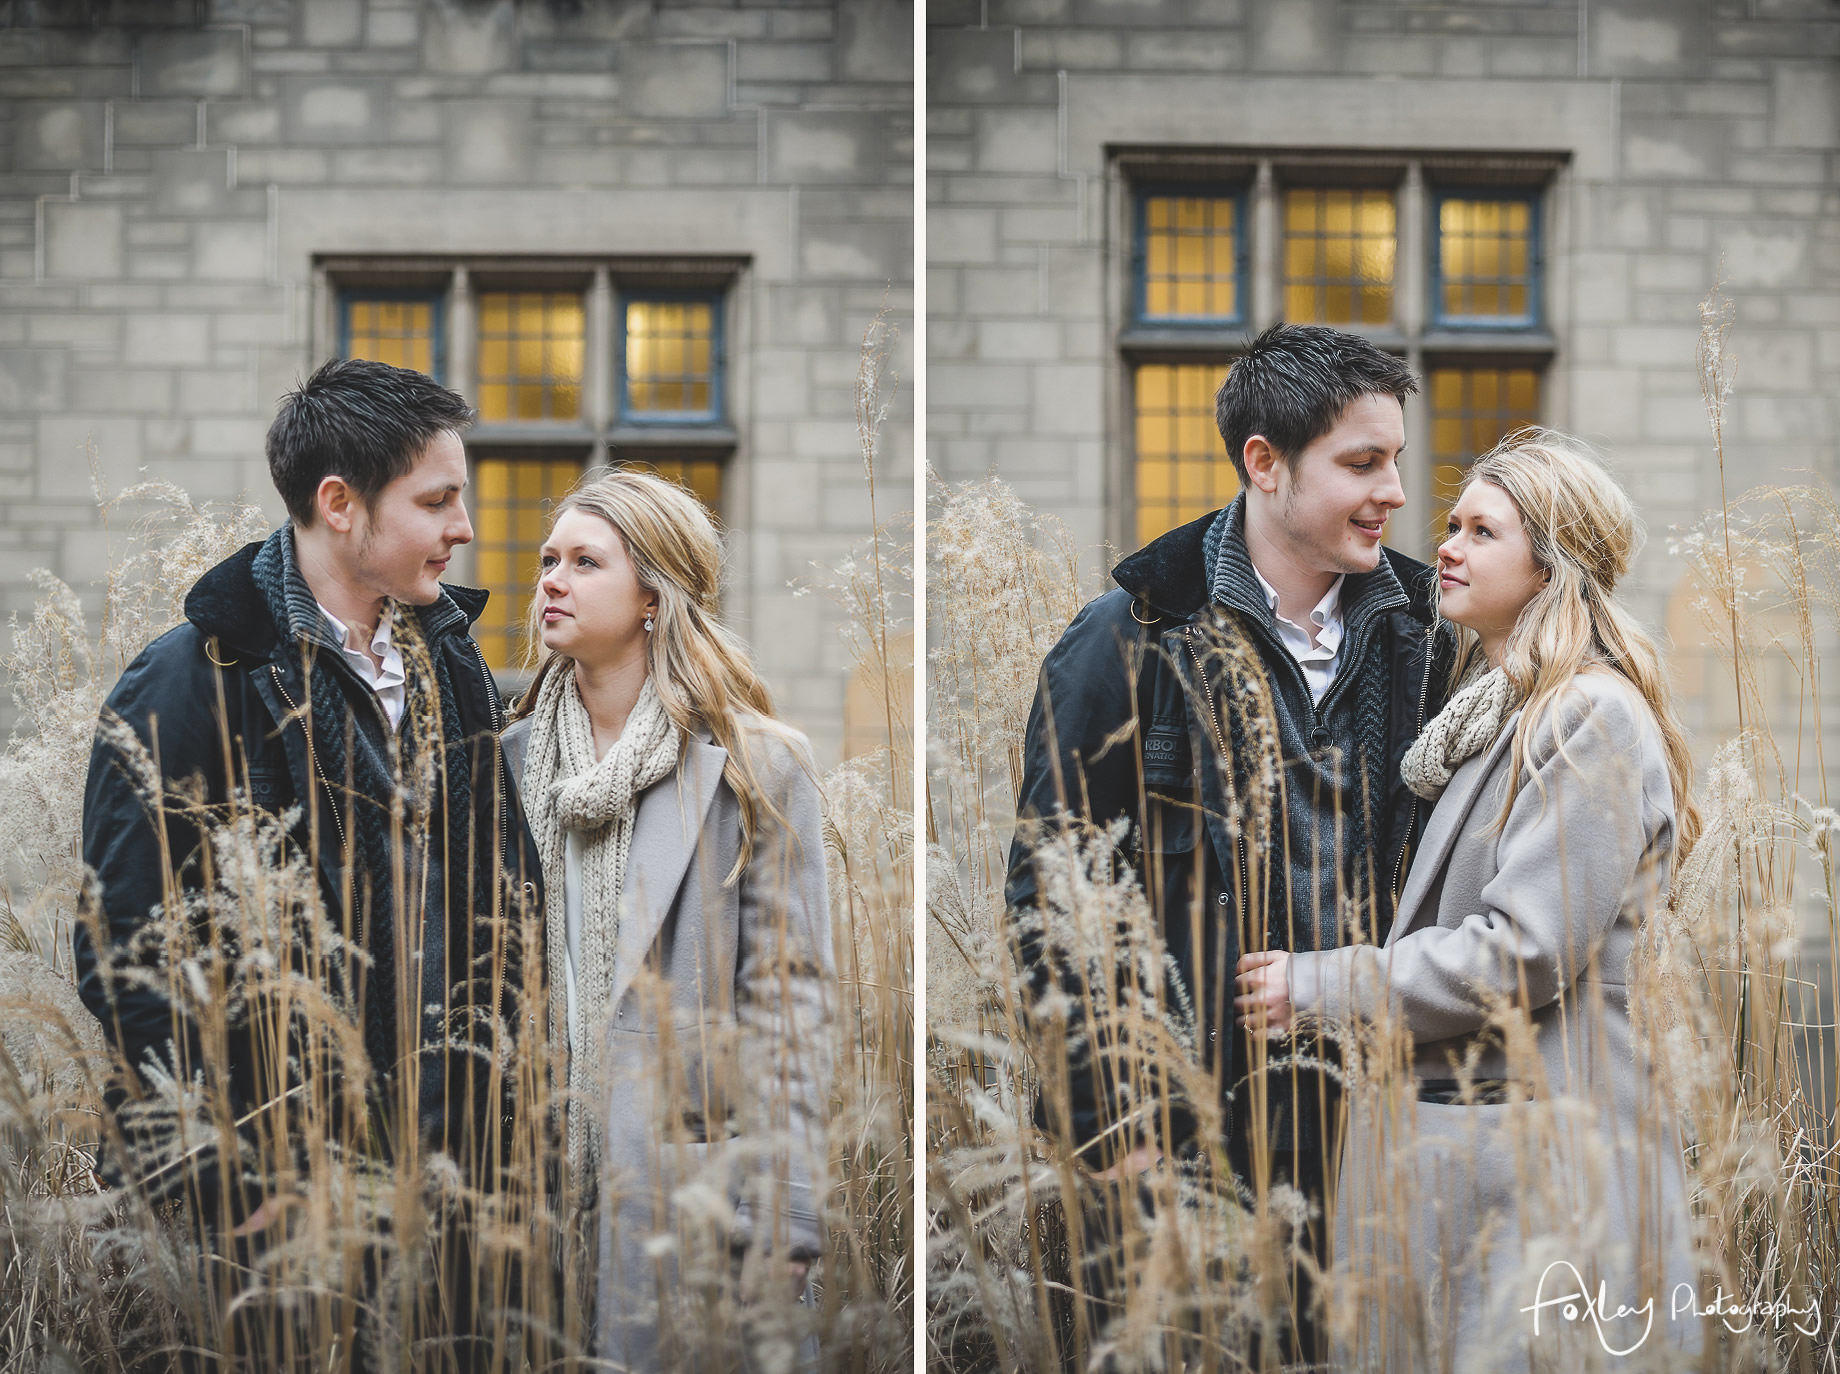 Gemma-and-Lewis-Pre-Wedding-Shoot-Manchester-City-Centre-038